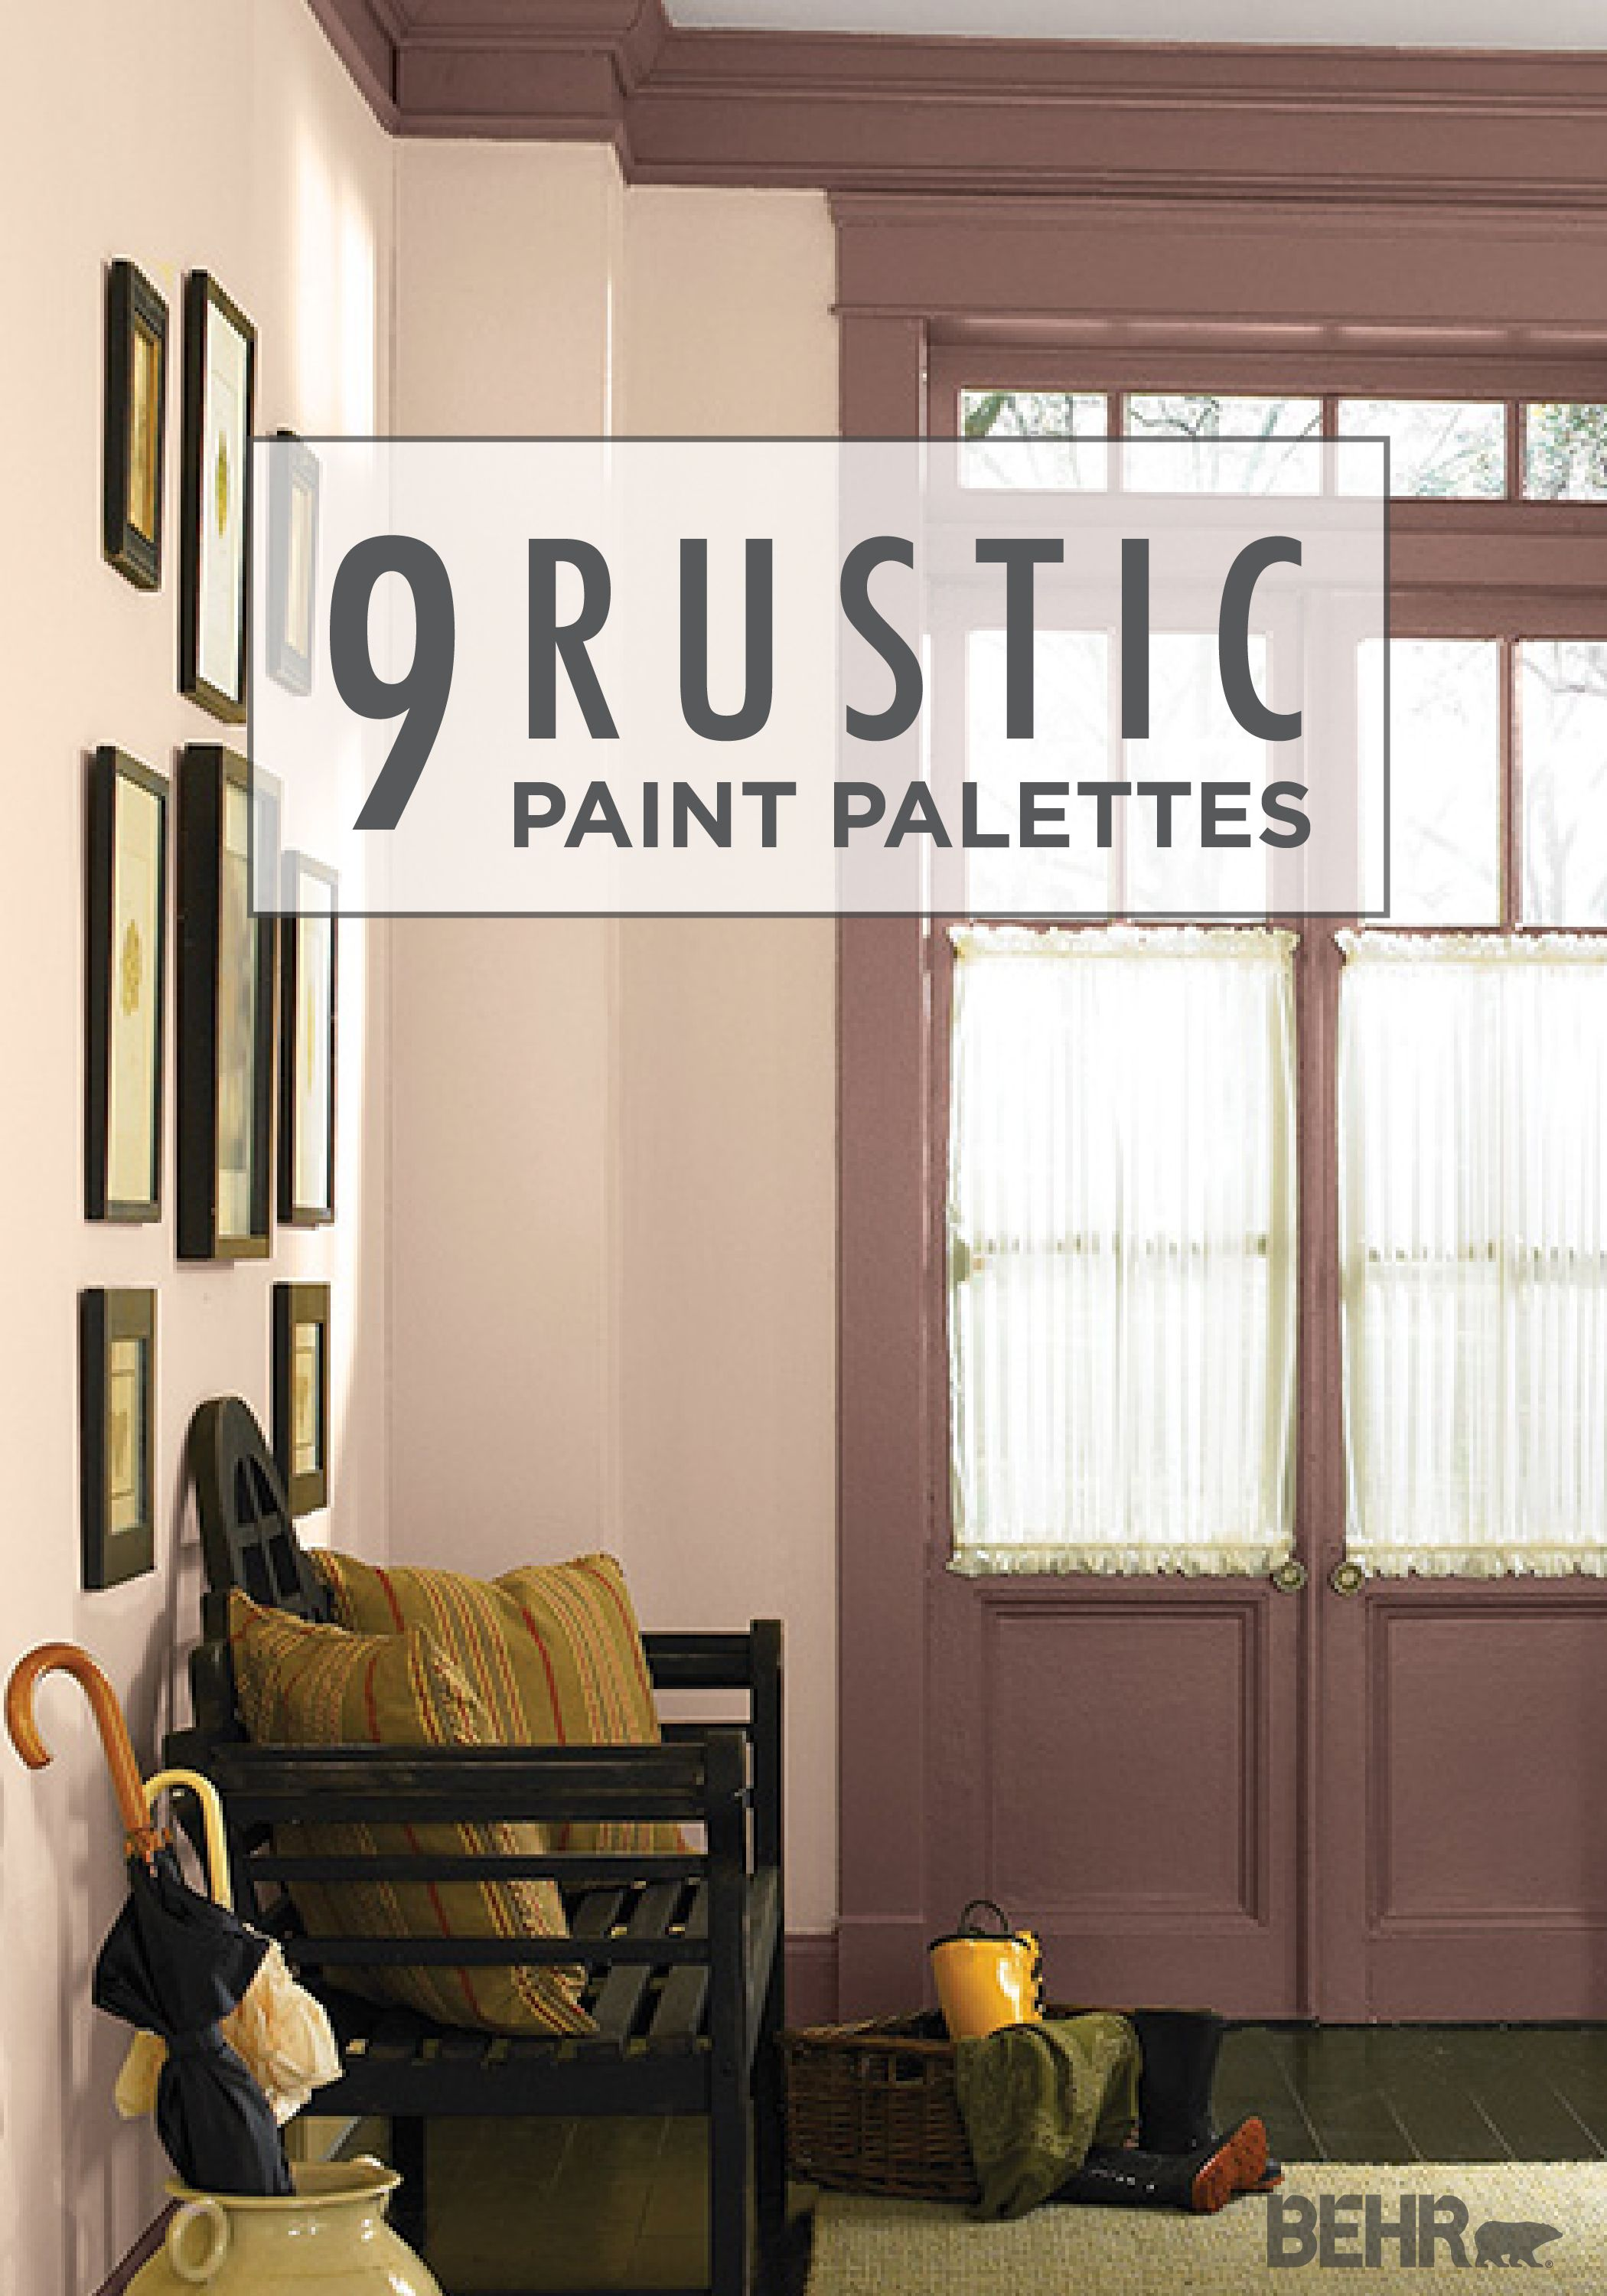 Rustic Paint Colors looking to add a bit more character to your home? these 9 rustic